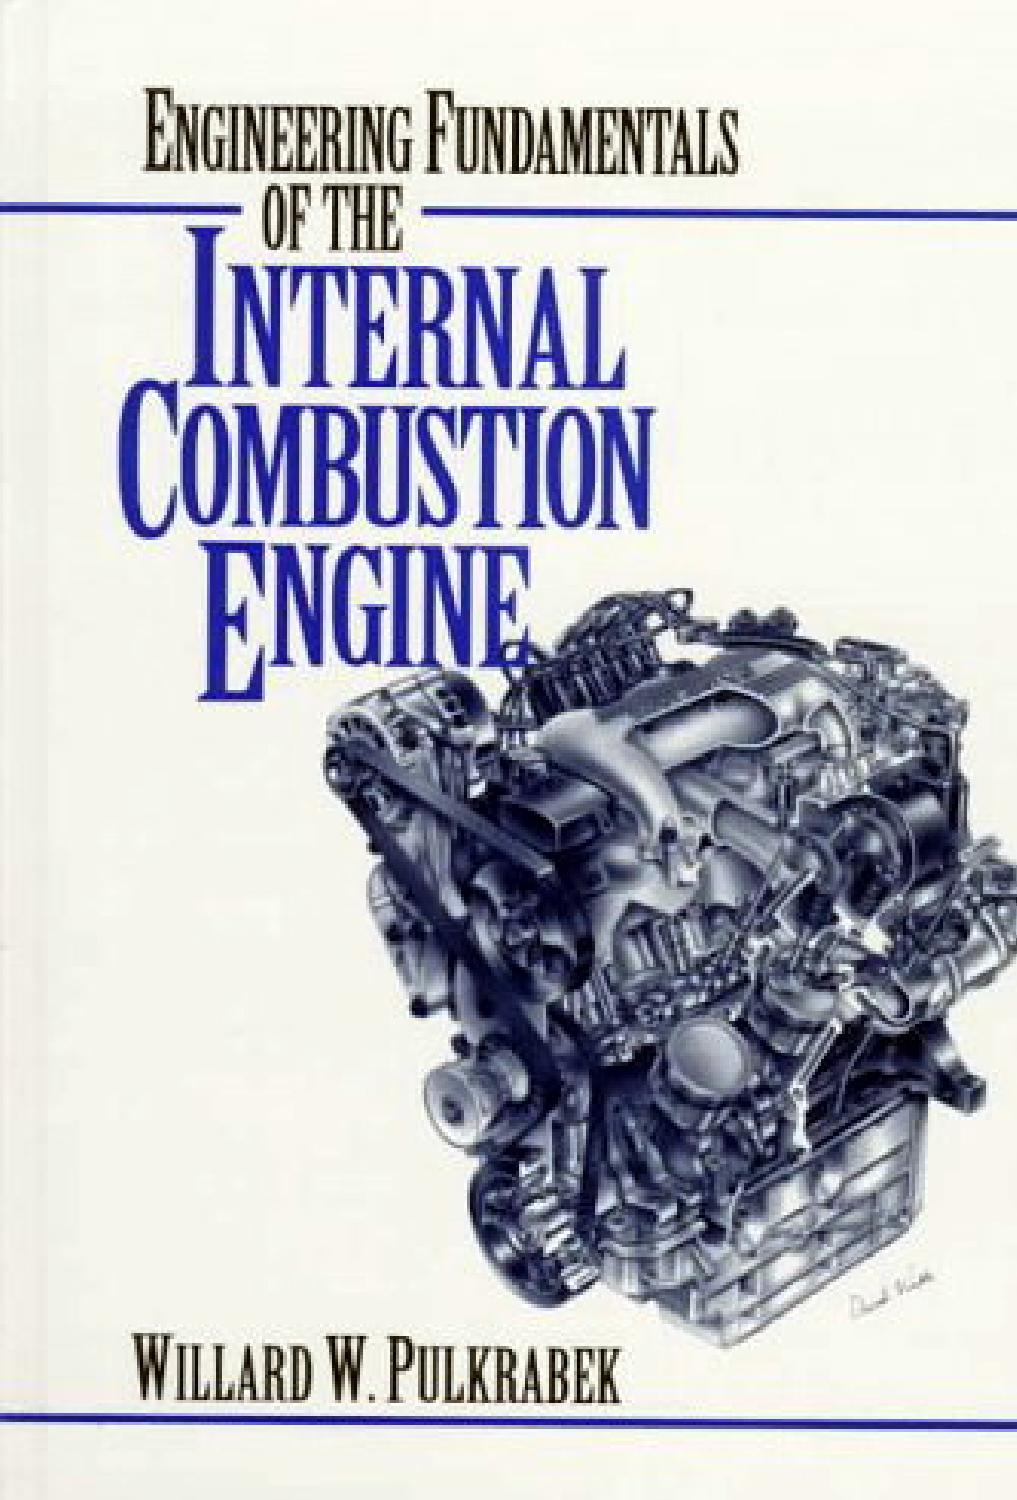 Engineering fundamentals of the internal combustion engine, pulkrabek by  Ahmad Hanif Firdaus - issuu